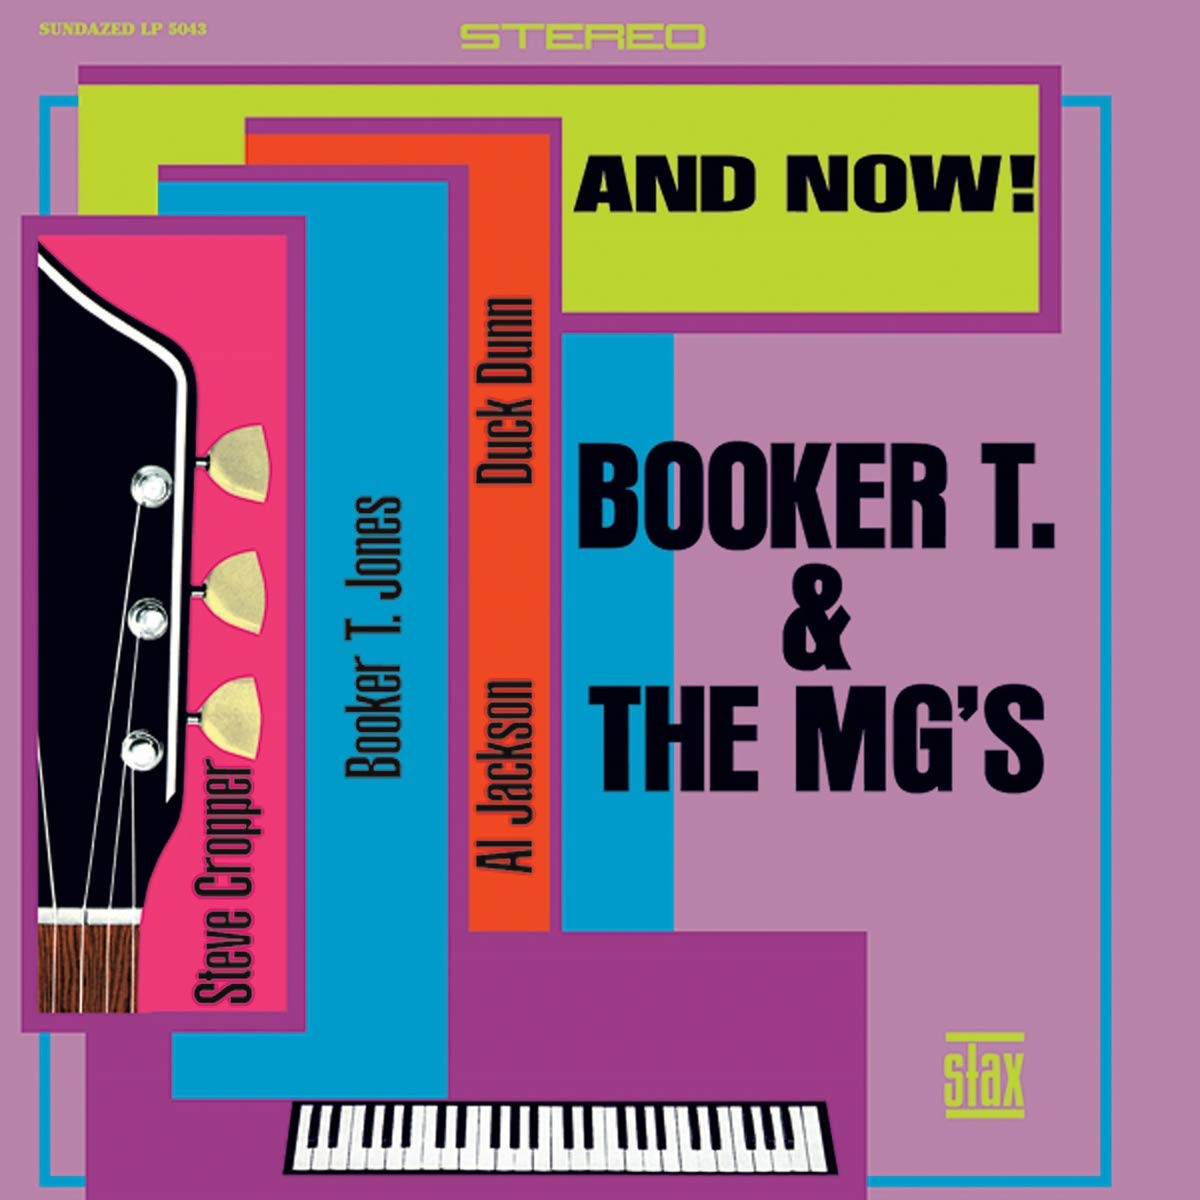 Booker T. & The MG's – And Now! (2013) [FLAC]